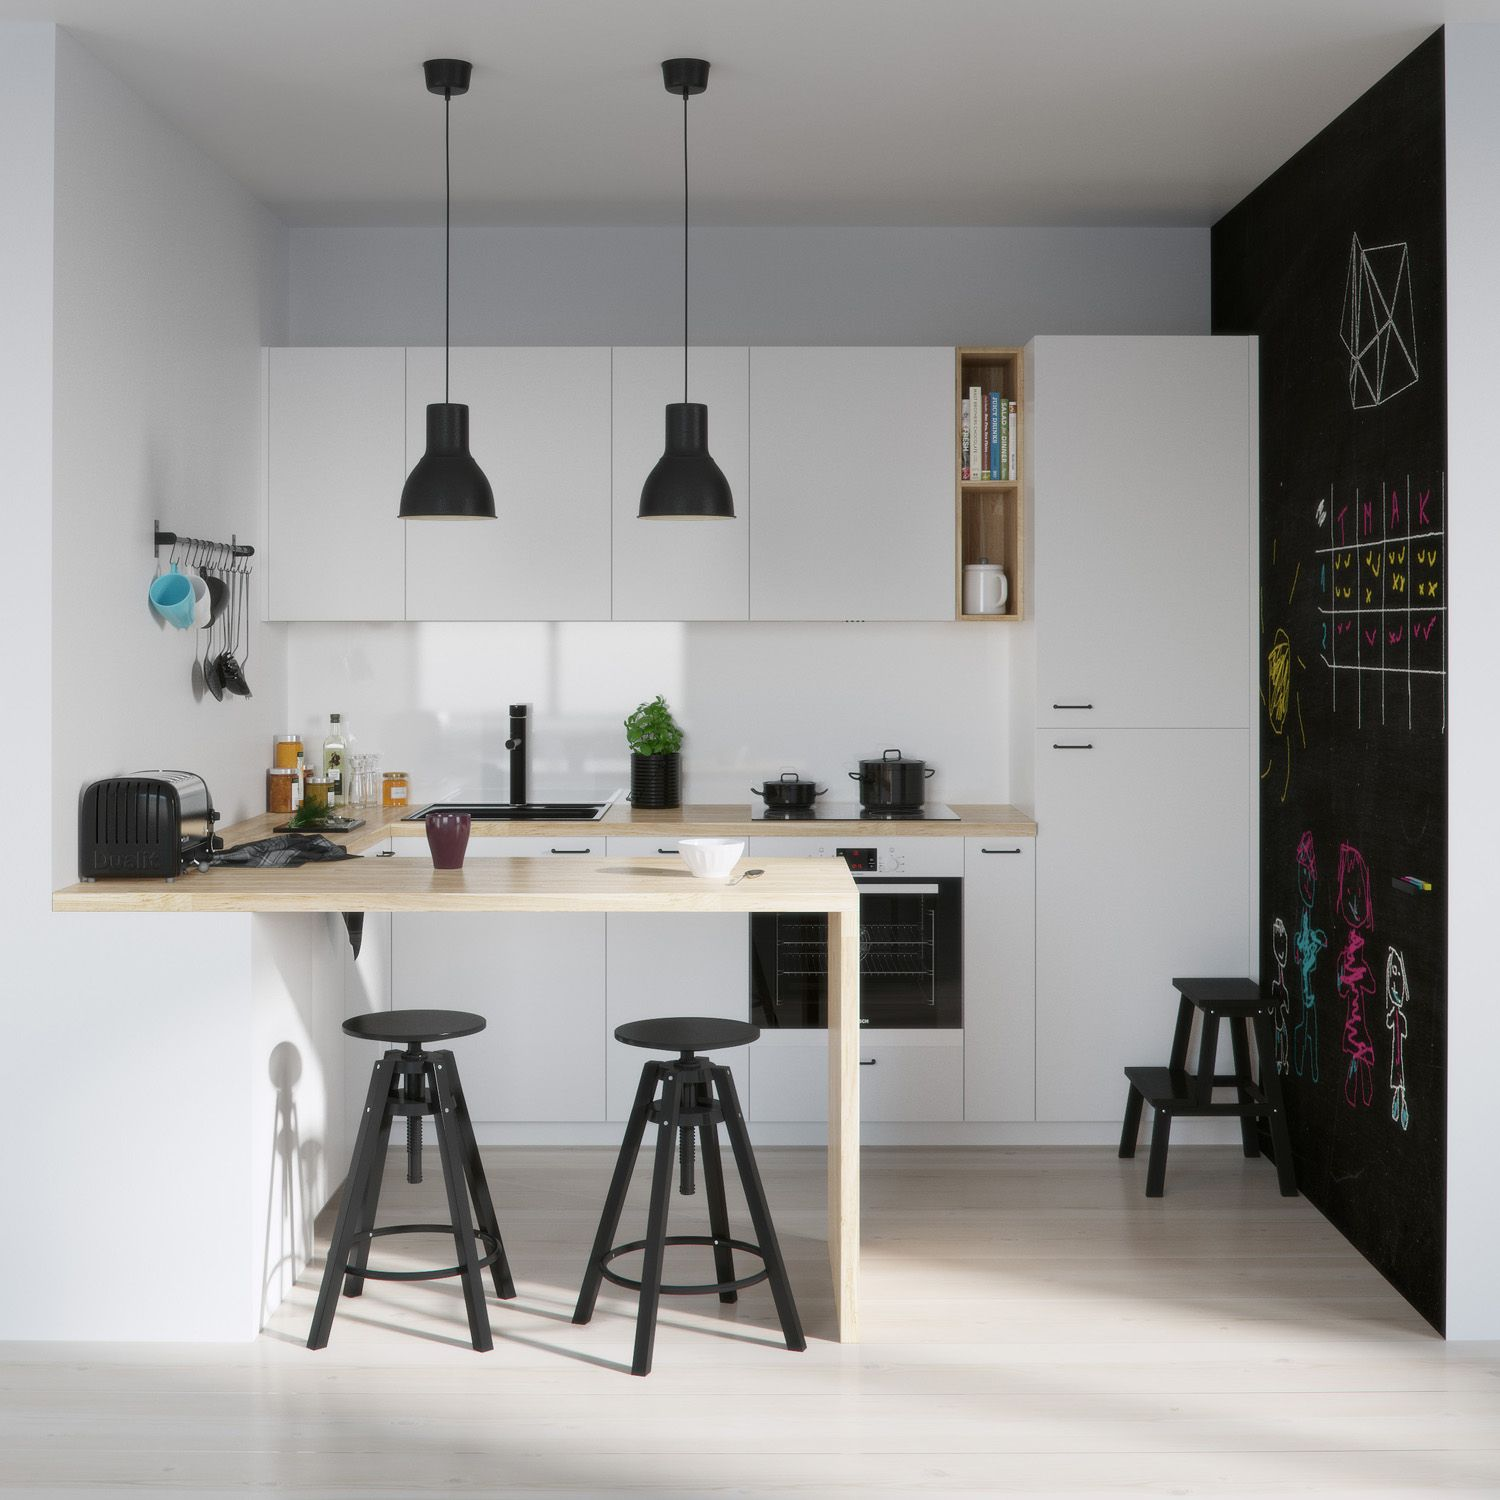 Ikea Kitchen   Tomek Michalski   Design | Visualization | 3d Art